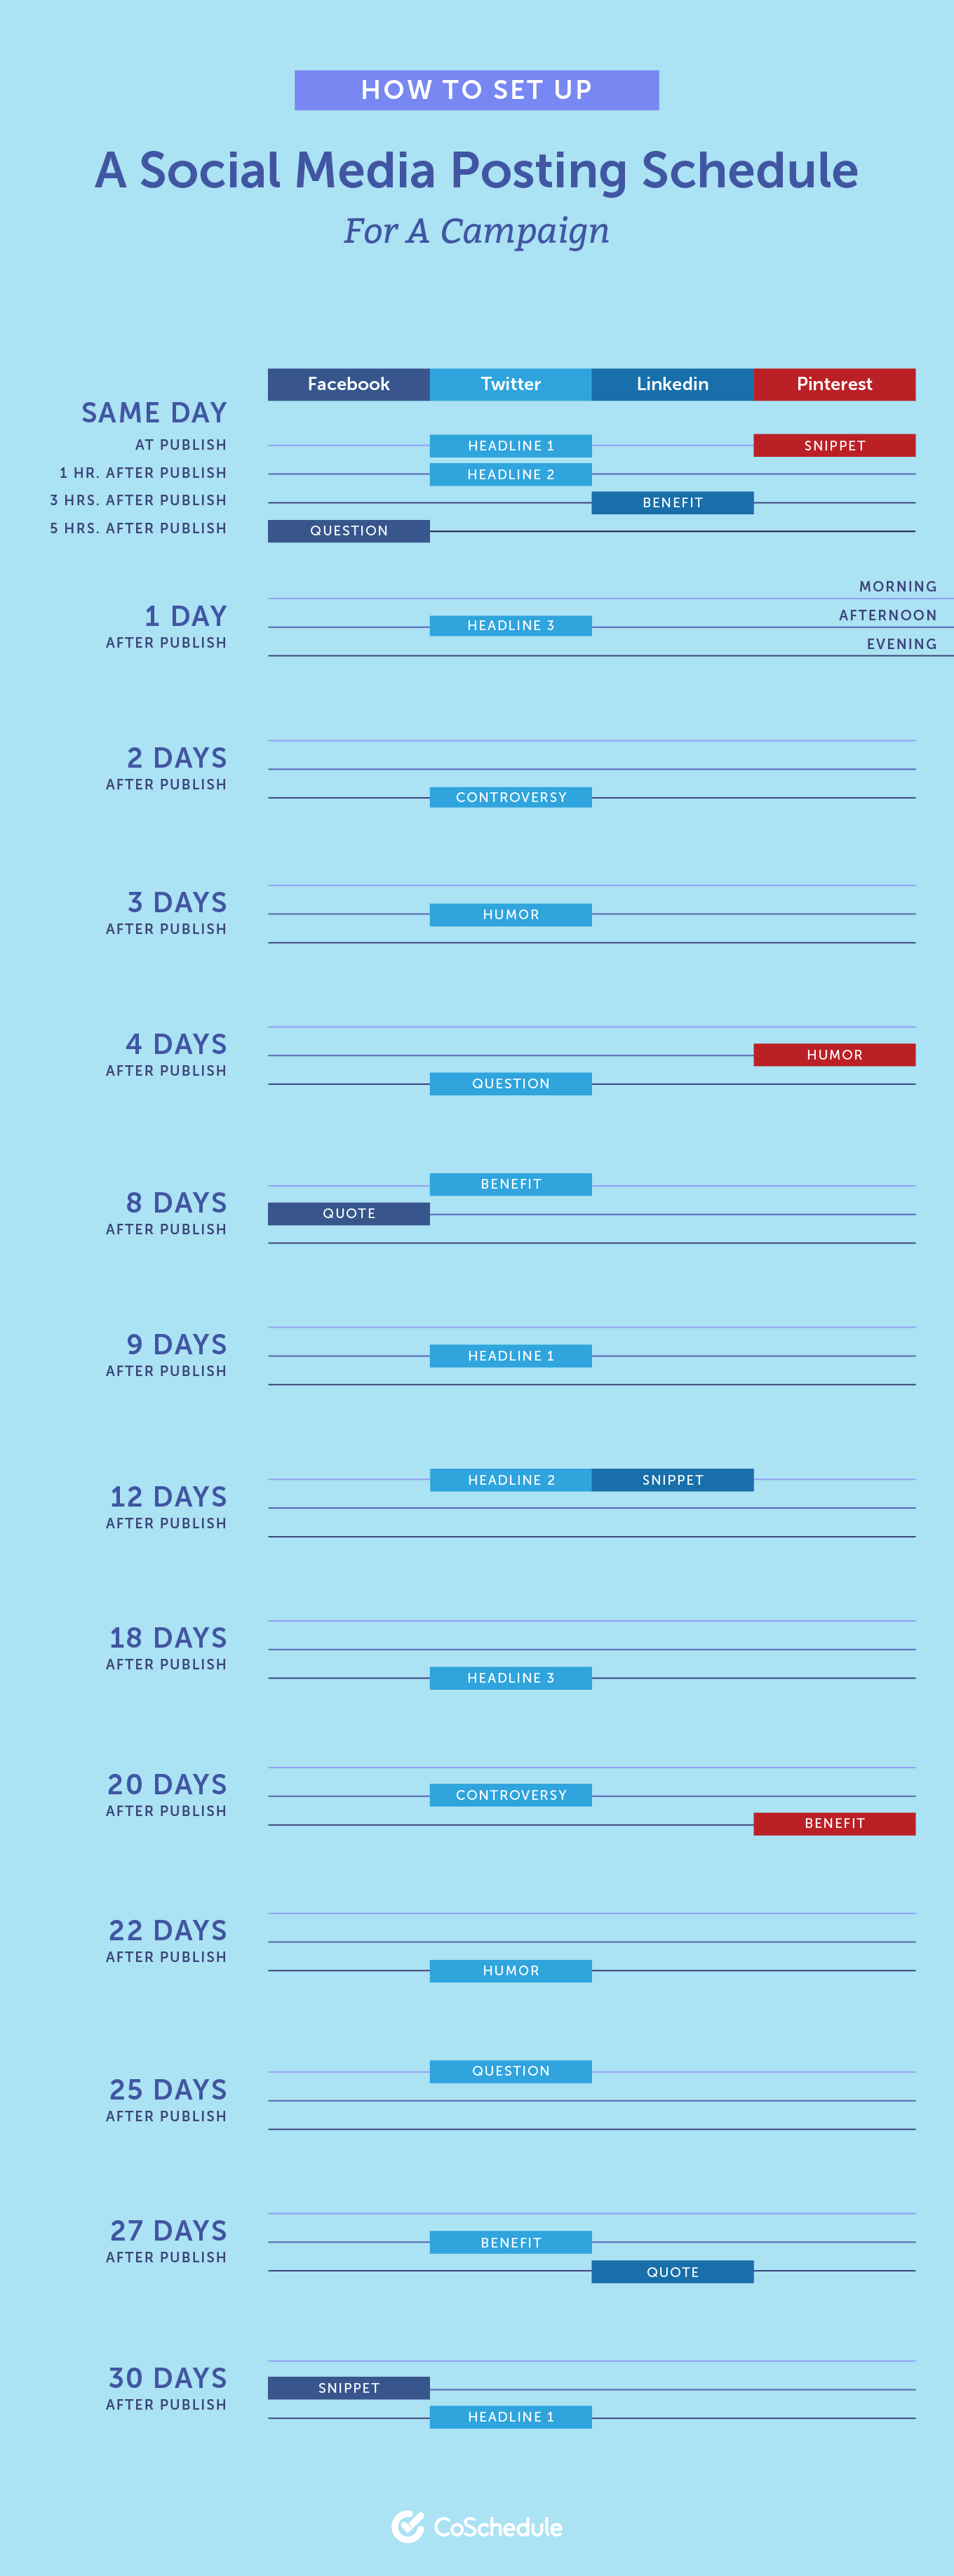 How to Set Up a Basic Social Media Posting Schedule